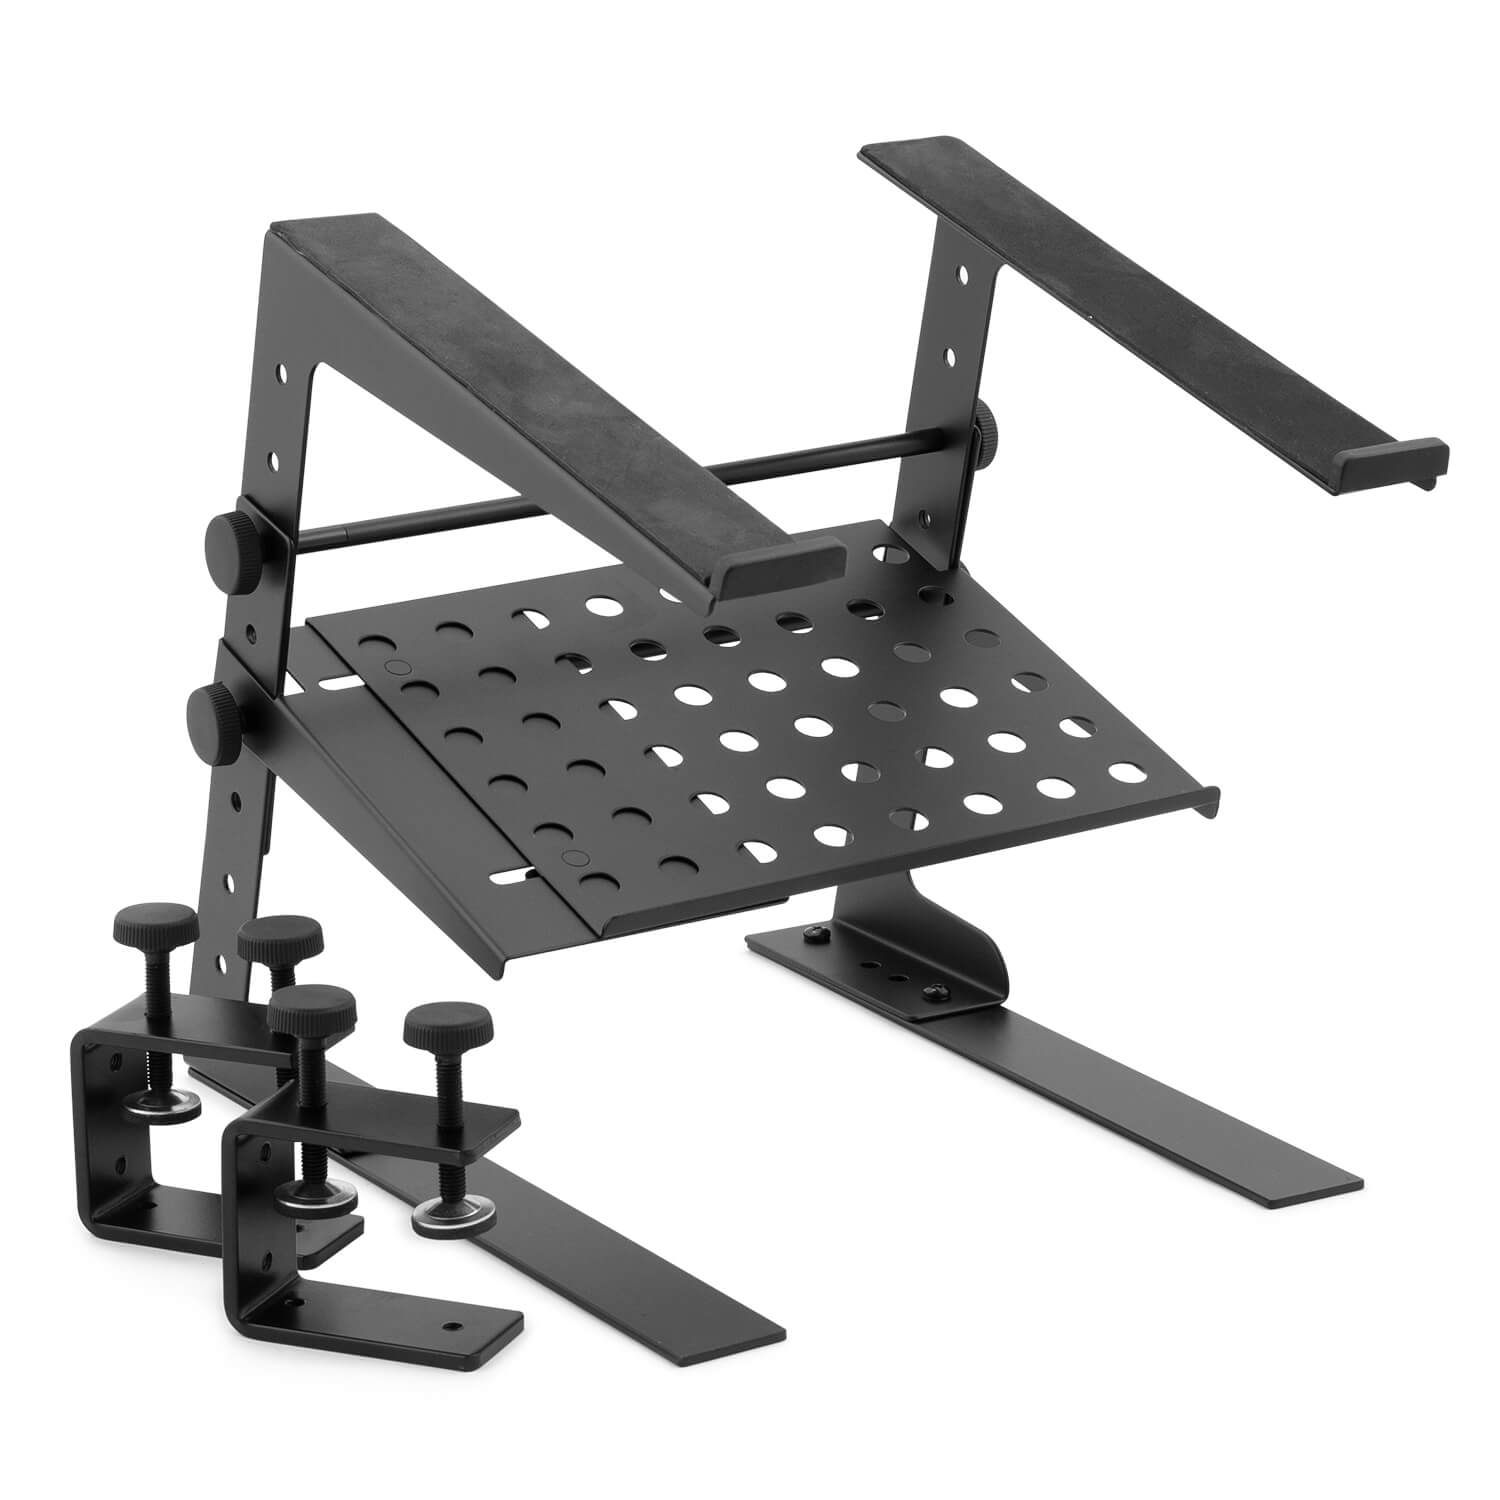 Tiger-Laptop-Stand-DJ-Stand-with-Shelf-and-Desktop-Clamps thumbnail 2